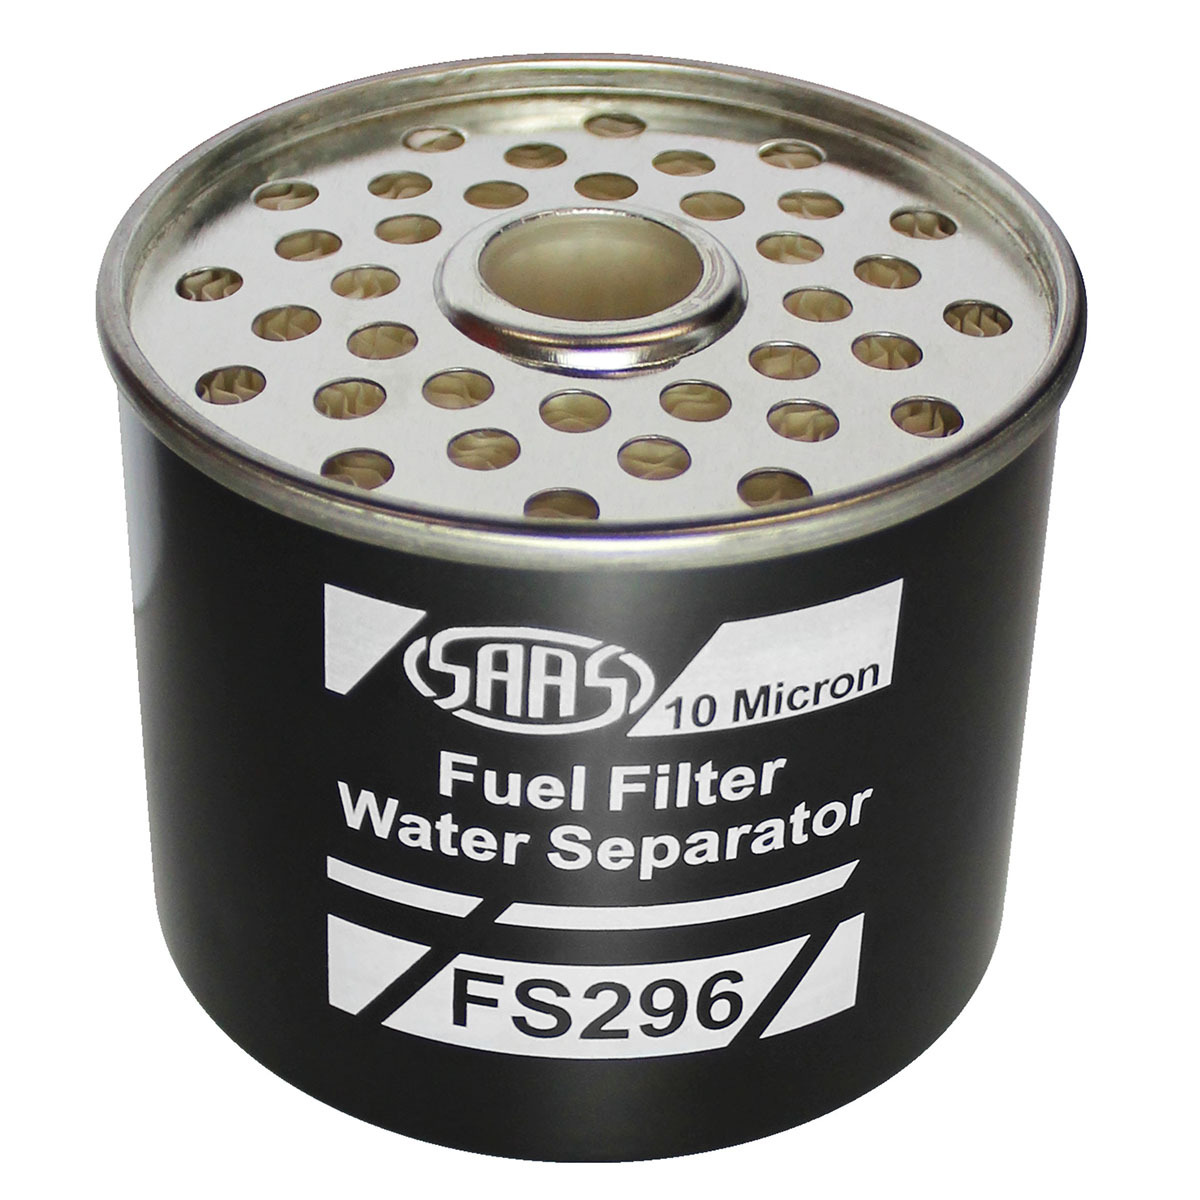 Fuel Filter 10 Microns suits FS201